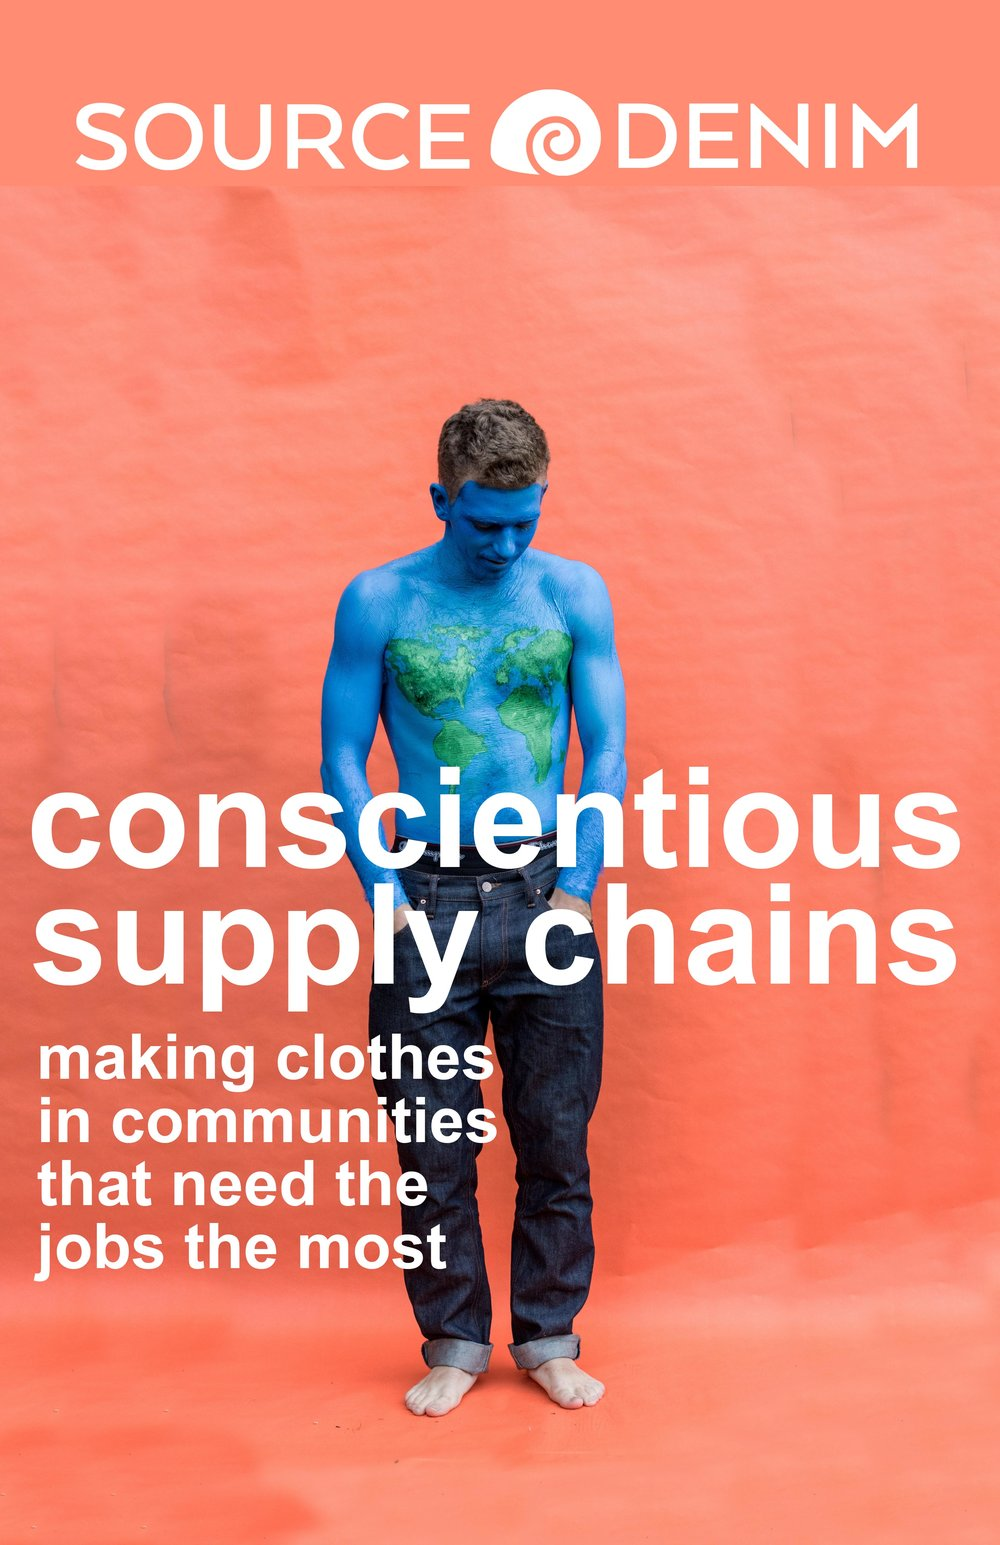 SOURCE Denim - conscientious supply chain